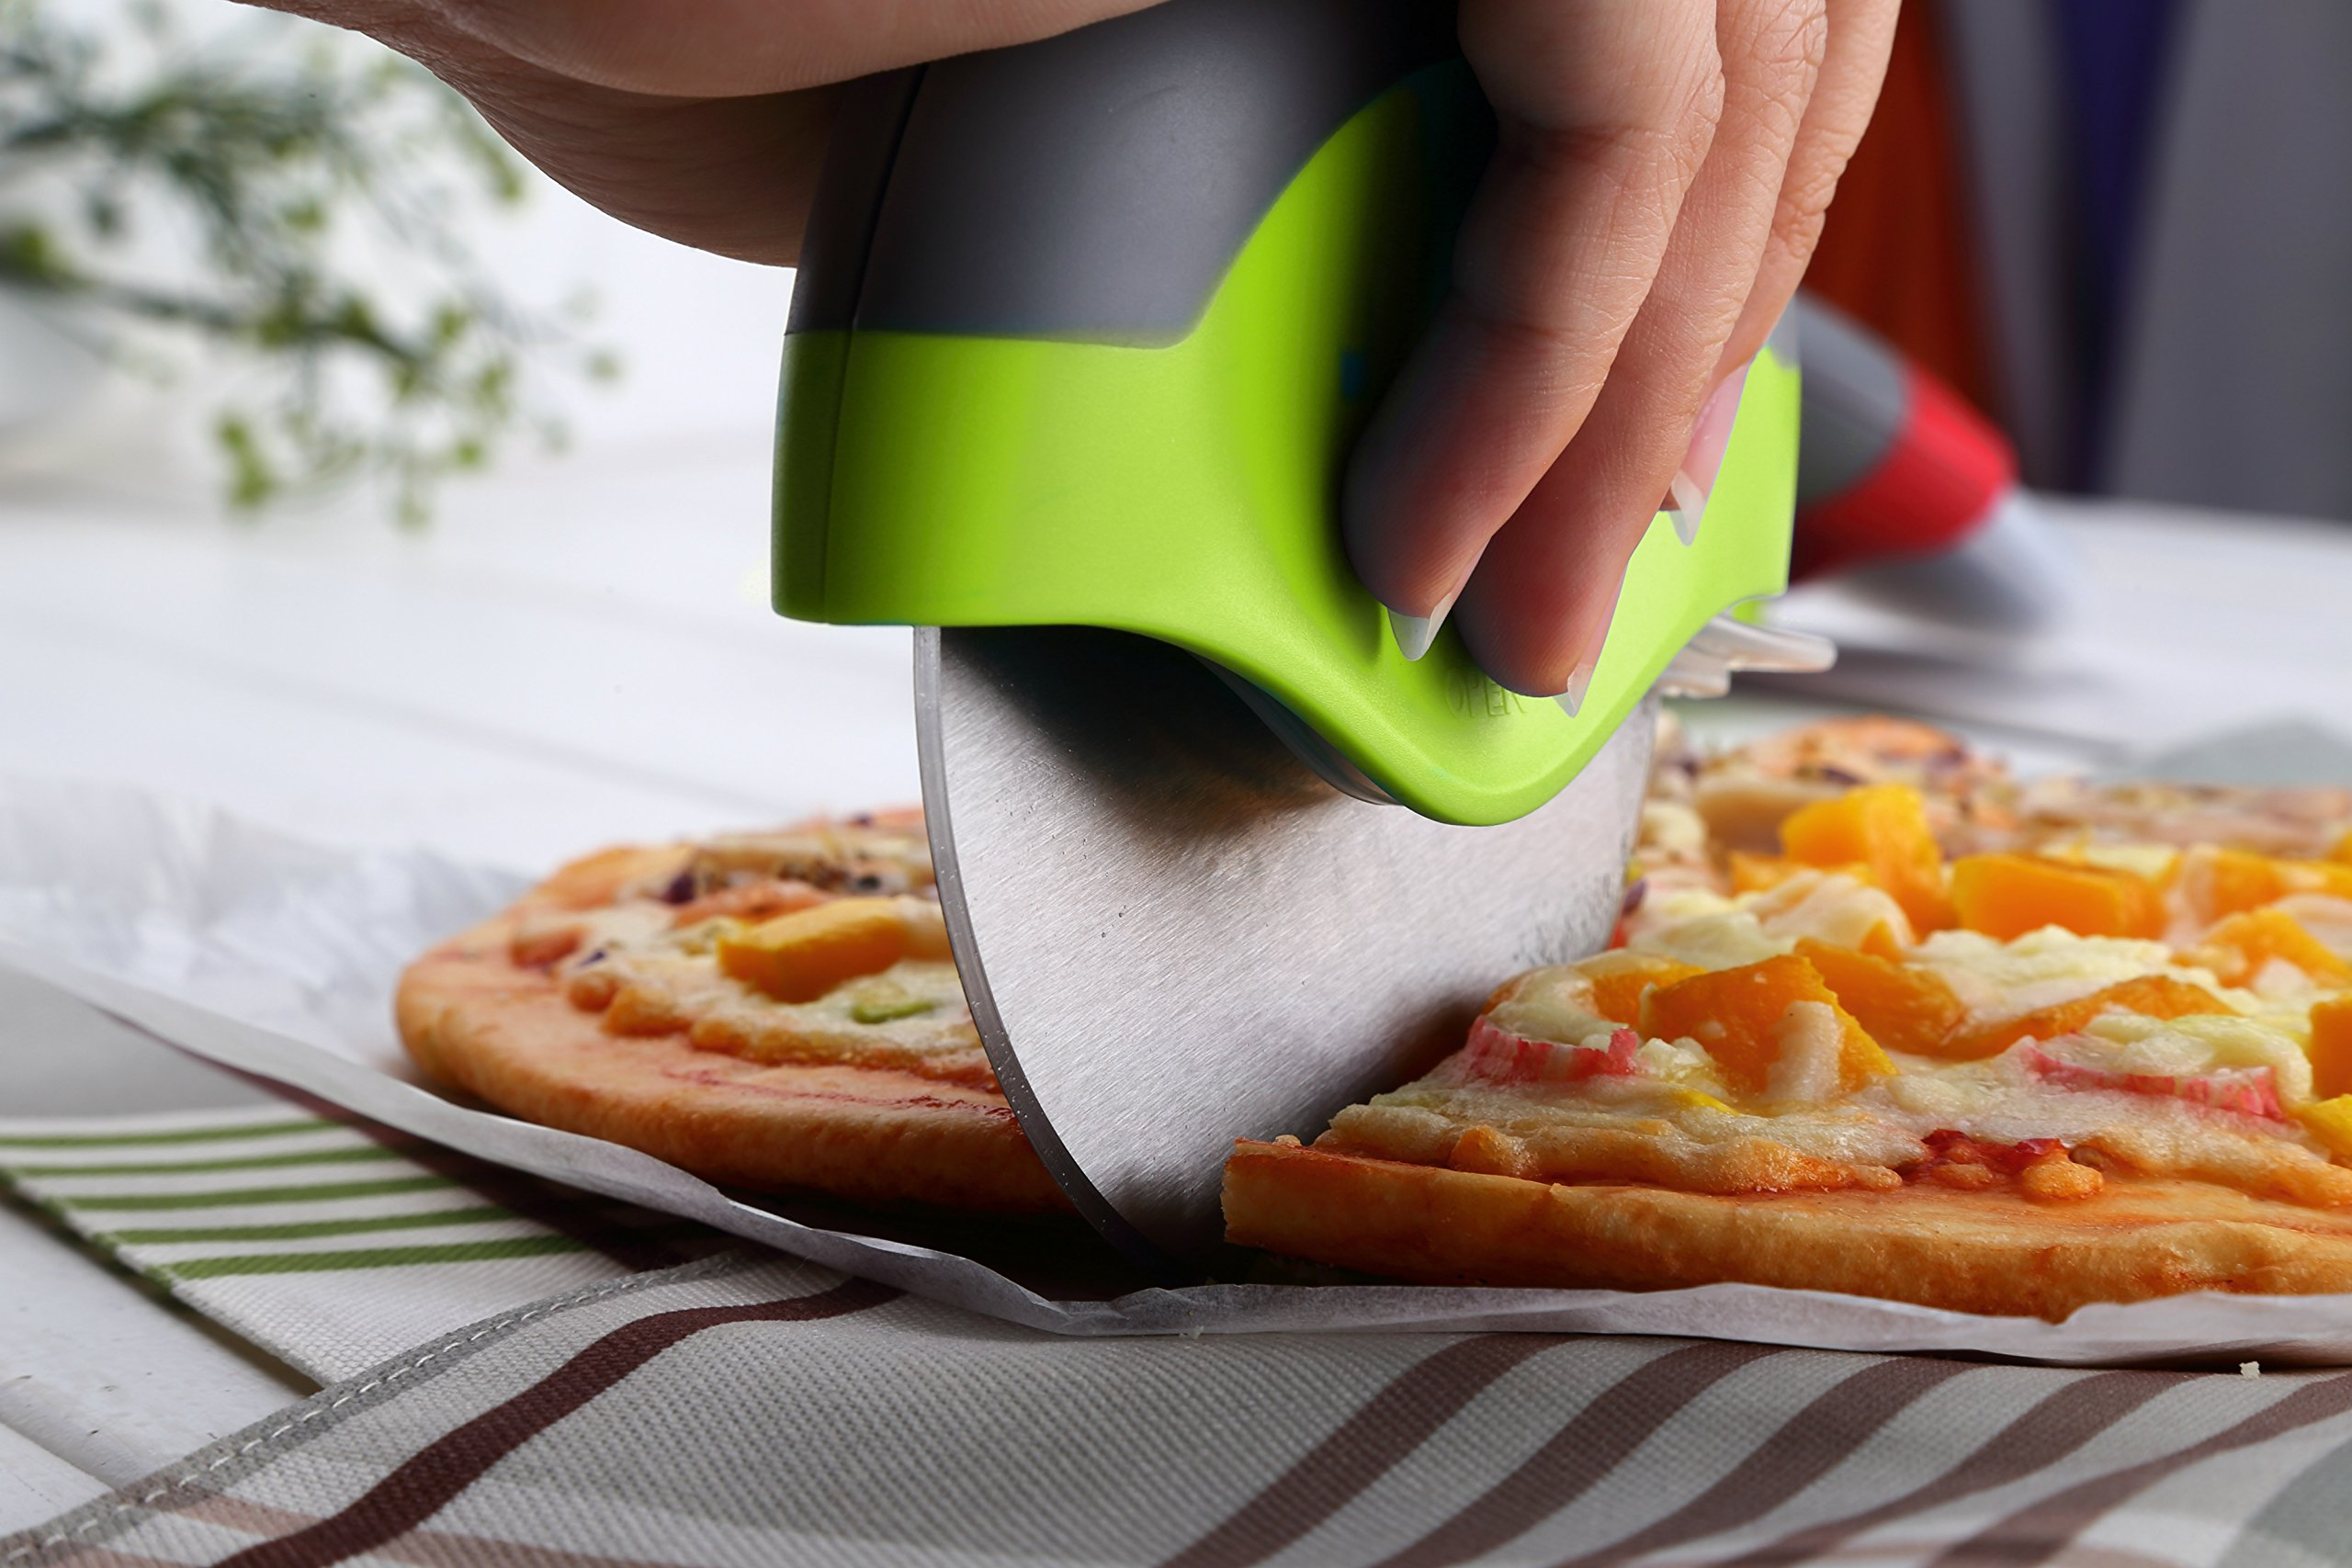 Kitchy Pizza Cutter Wheel - Super Sharp and Easy To Clean Slicer, Kitchen Gadget with Protective Blade Guard (Green) by Kitchy (Image #3)